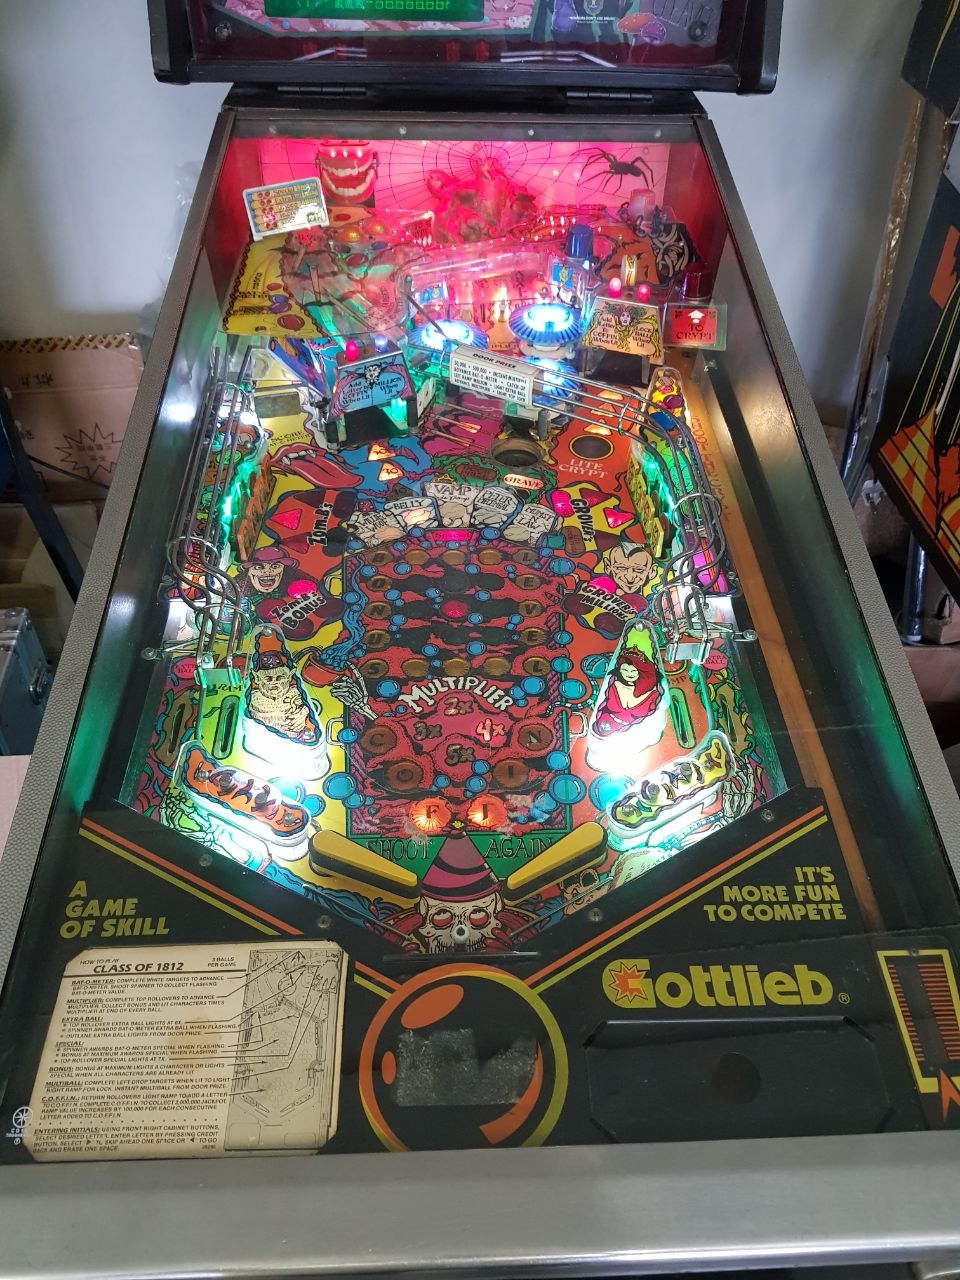 Class of 1812 Pinball Machine by Gottlieb available for sale